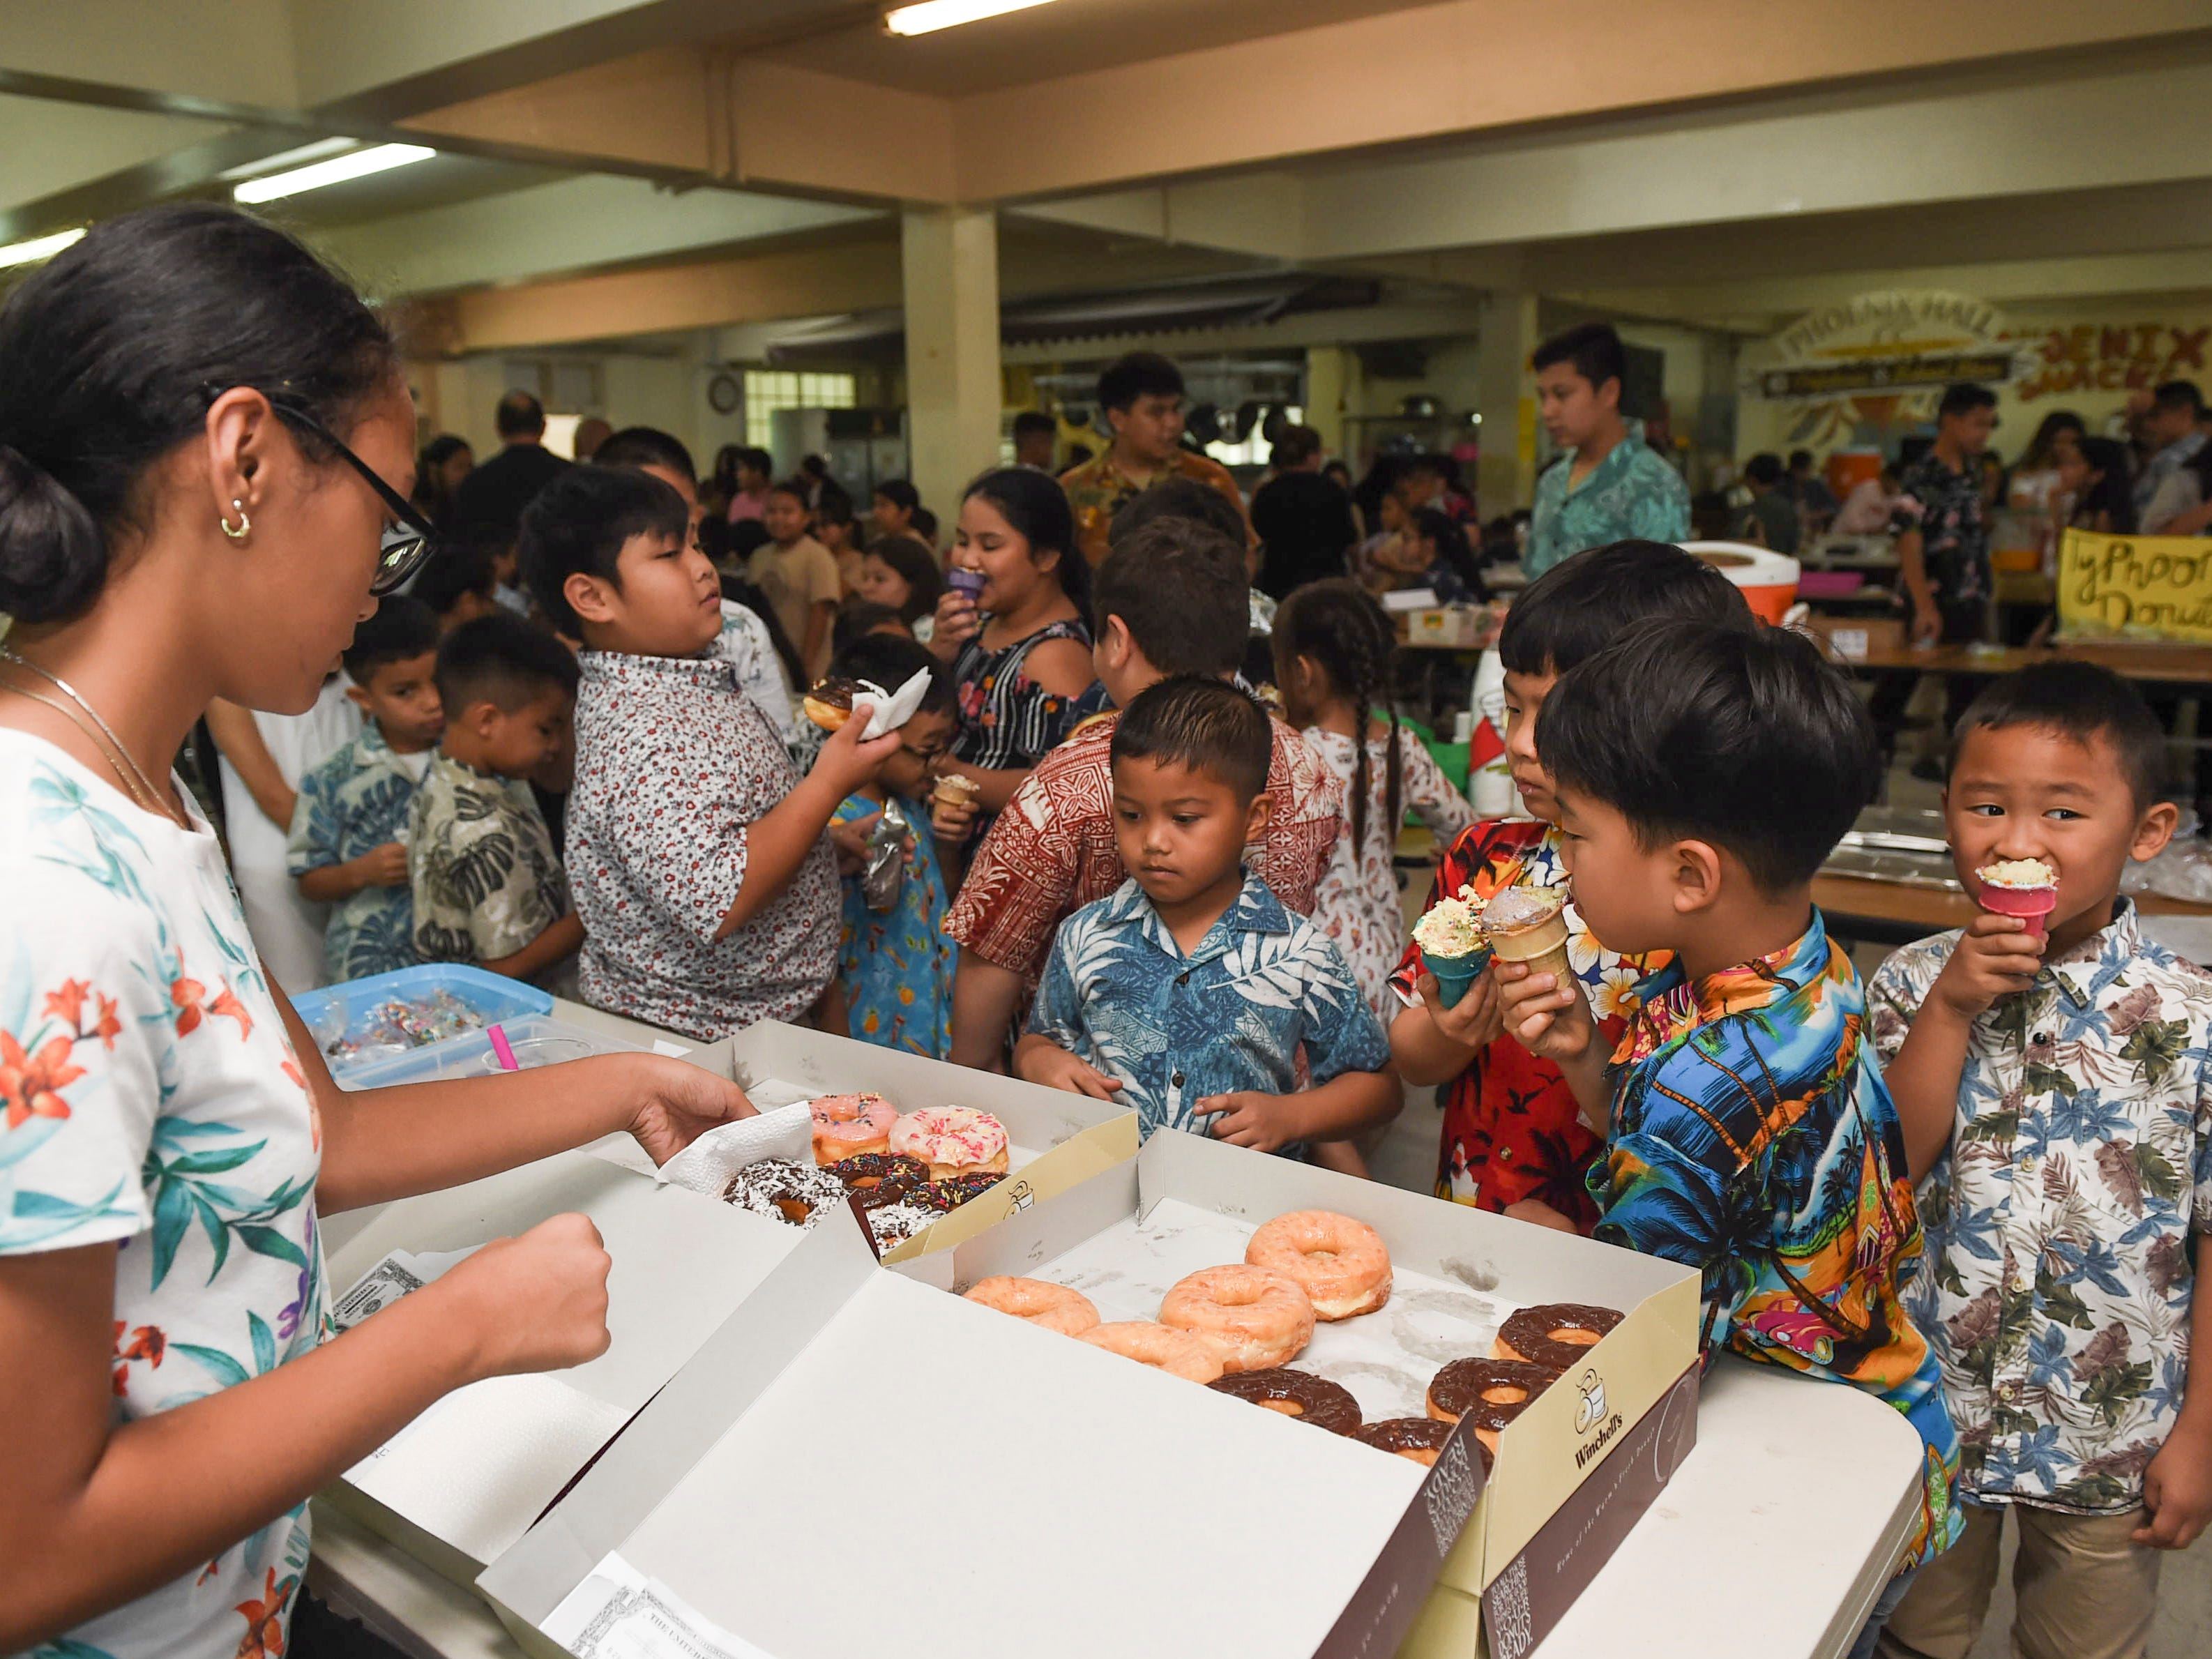 Middle school students test out their business ideas on elementary schoolers during the 5th Annual Ysrael School of Business Retail Bazaar and Entrepreneur Fair at Our Lady of Mount Carmel Catholic School in Agat, Jan. 18, 2019.